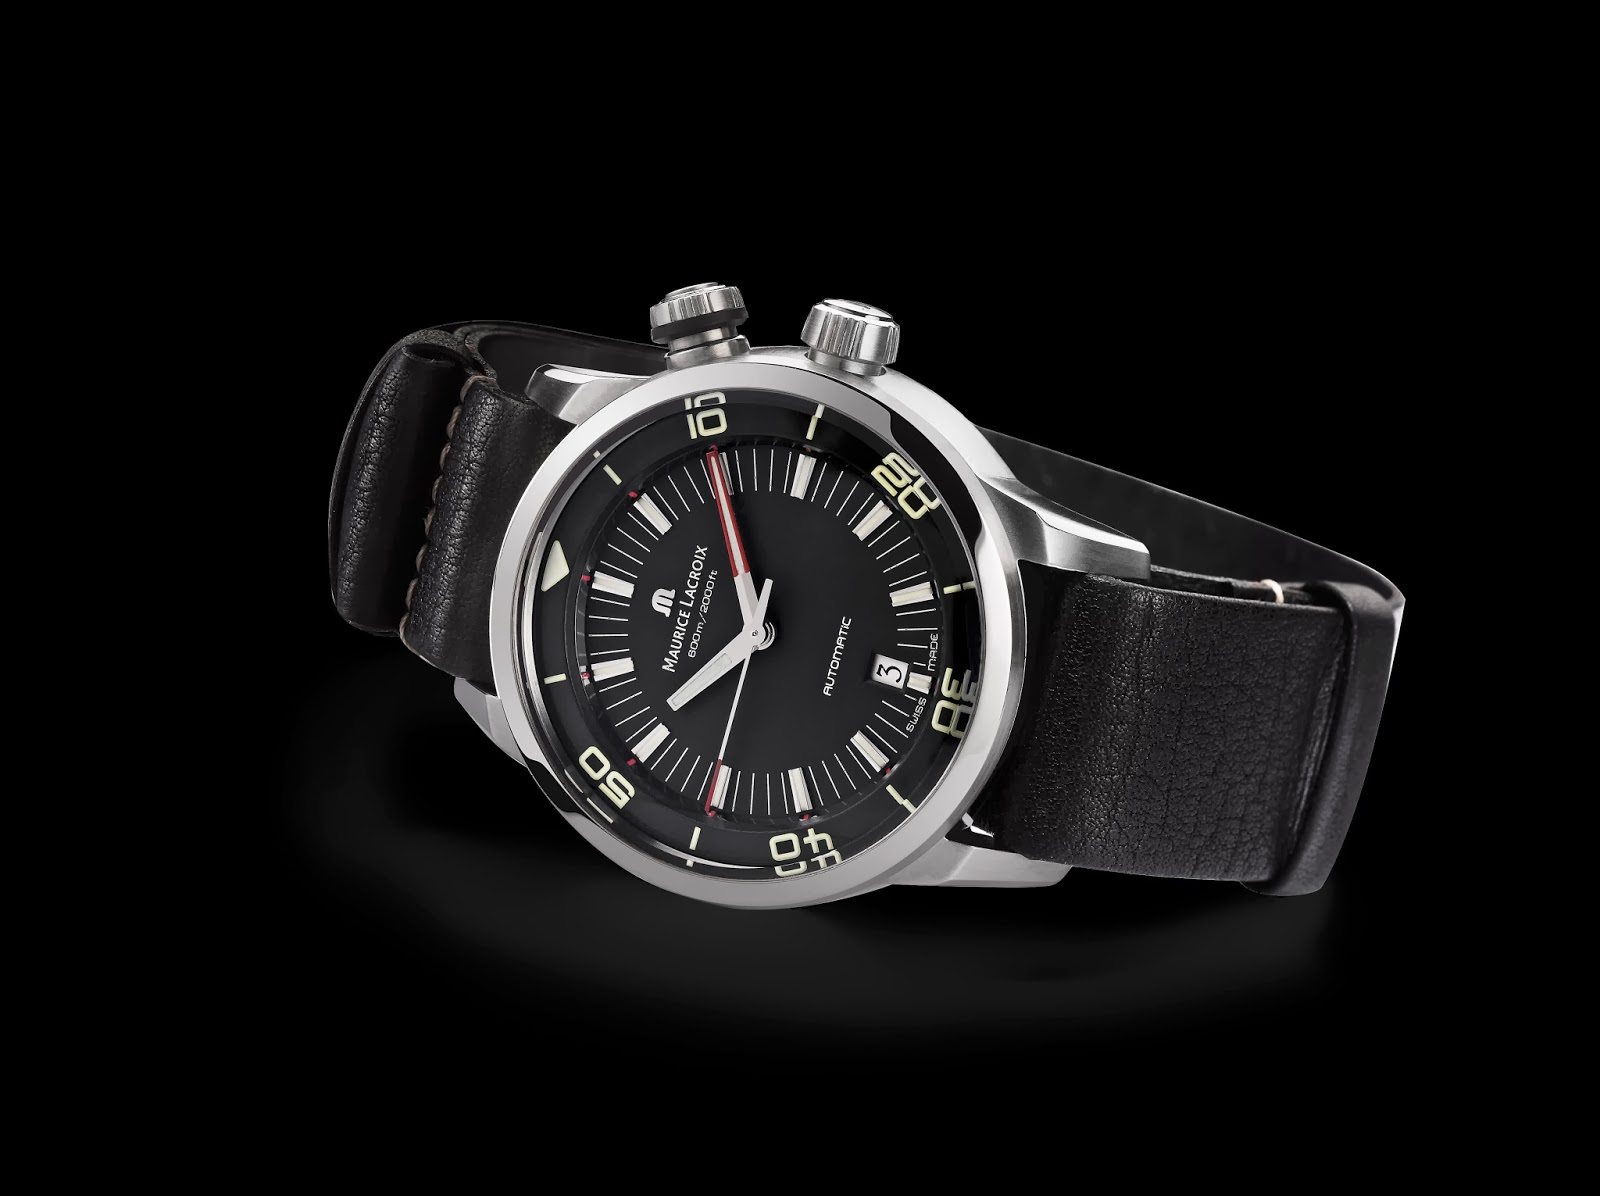 Classic Dive Watch: the Maurice Lacroix Points S Diver